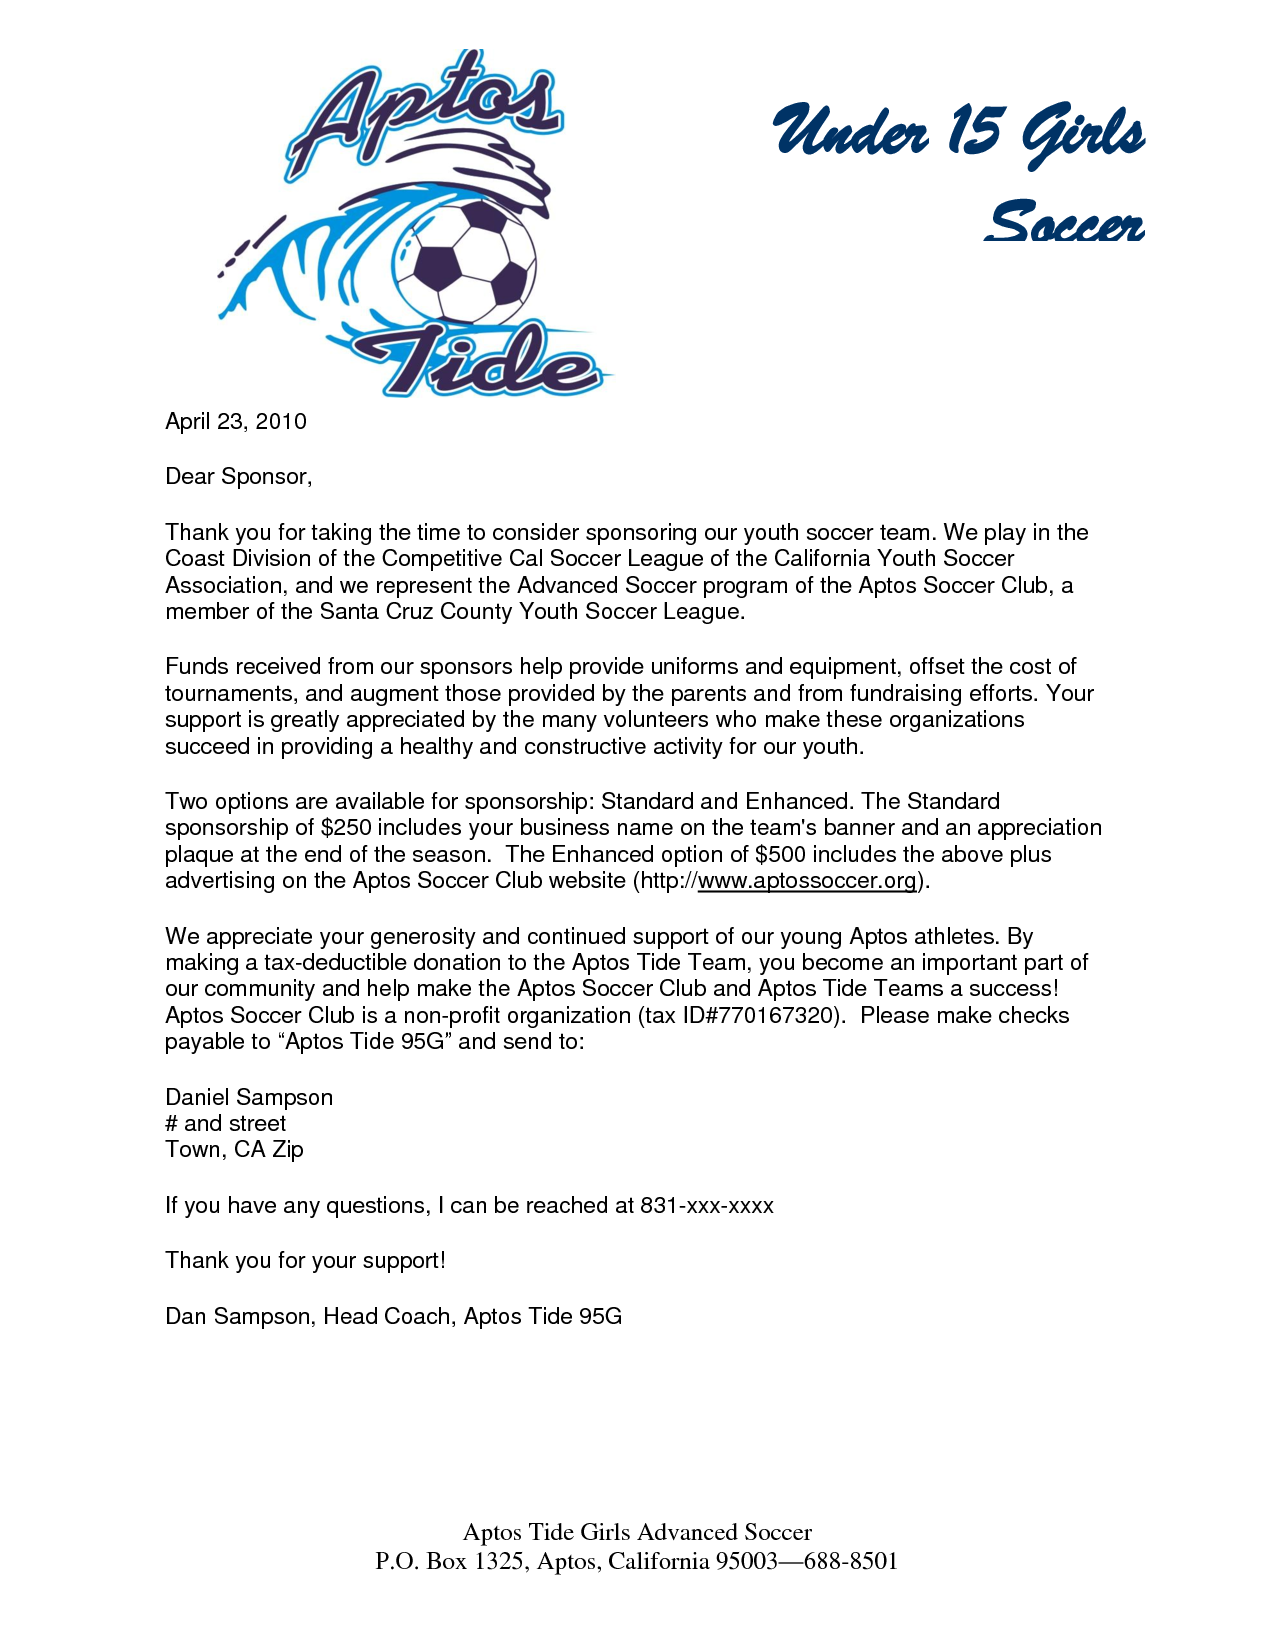 parent thank you letter from youth athletes